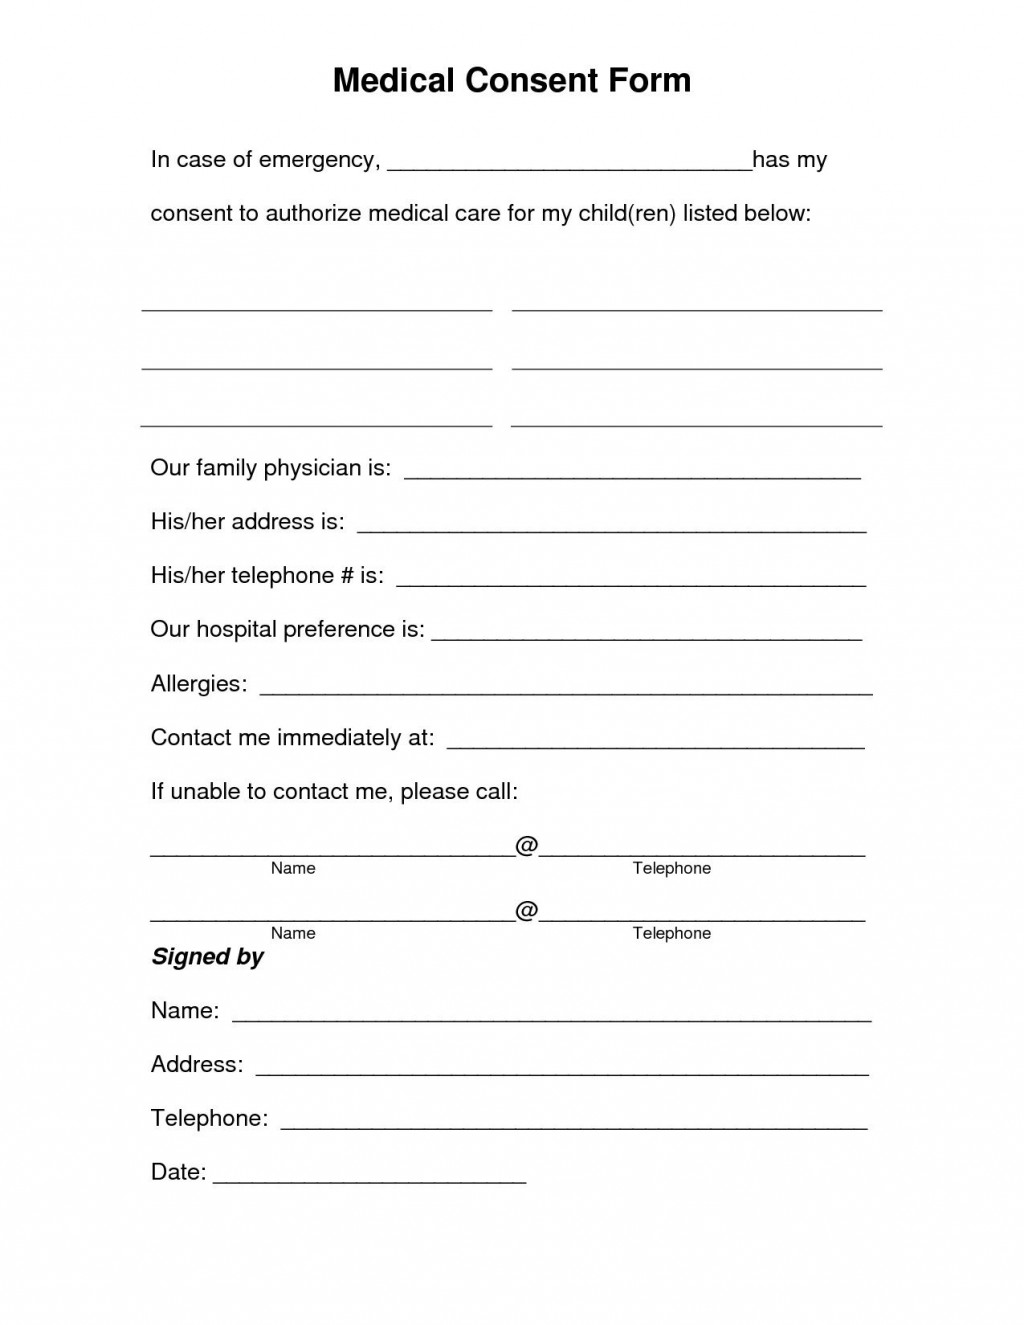 003 Singular Medical Release Form Template Idea  Free Consent Uk For MinorLarge